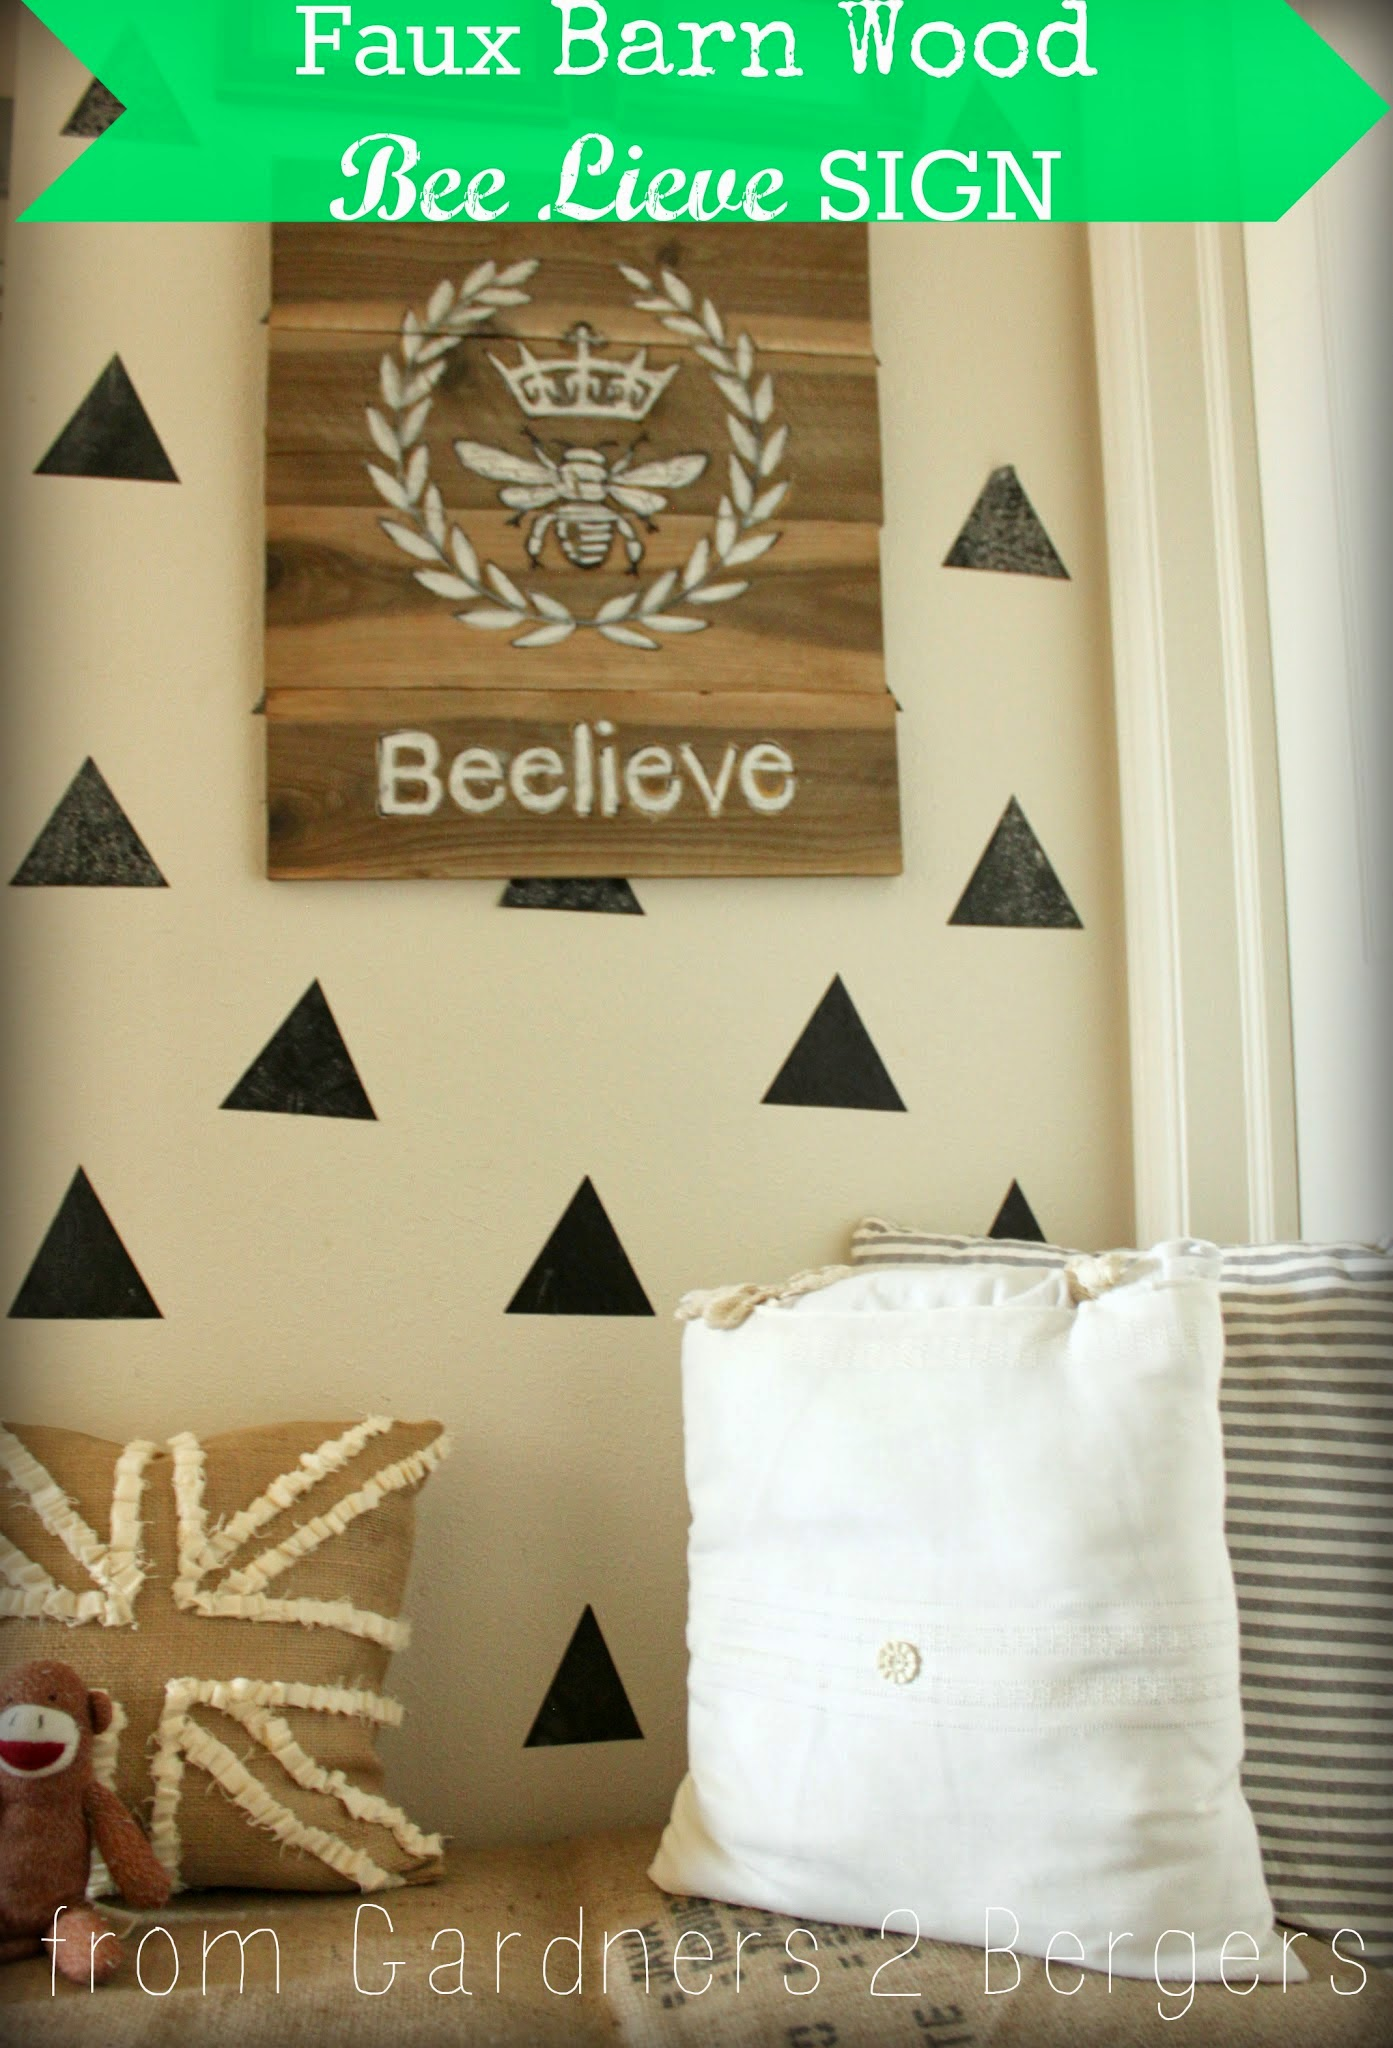 Faux-Barn-Wood-Bee-Lieve-Sign